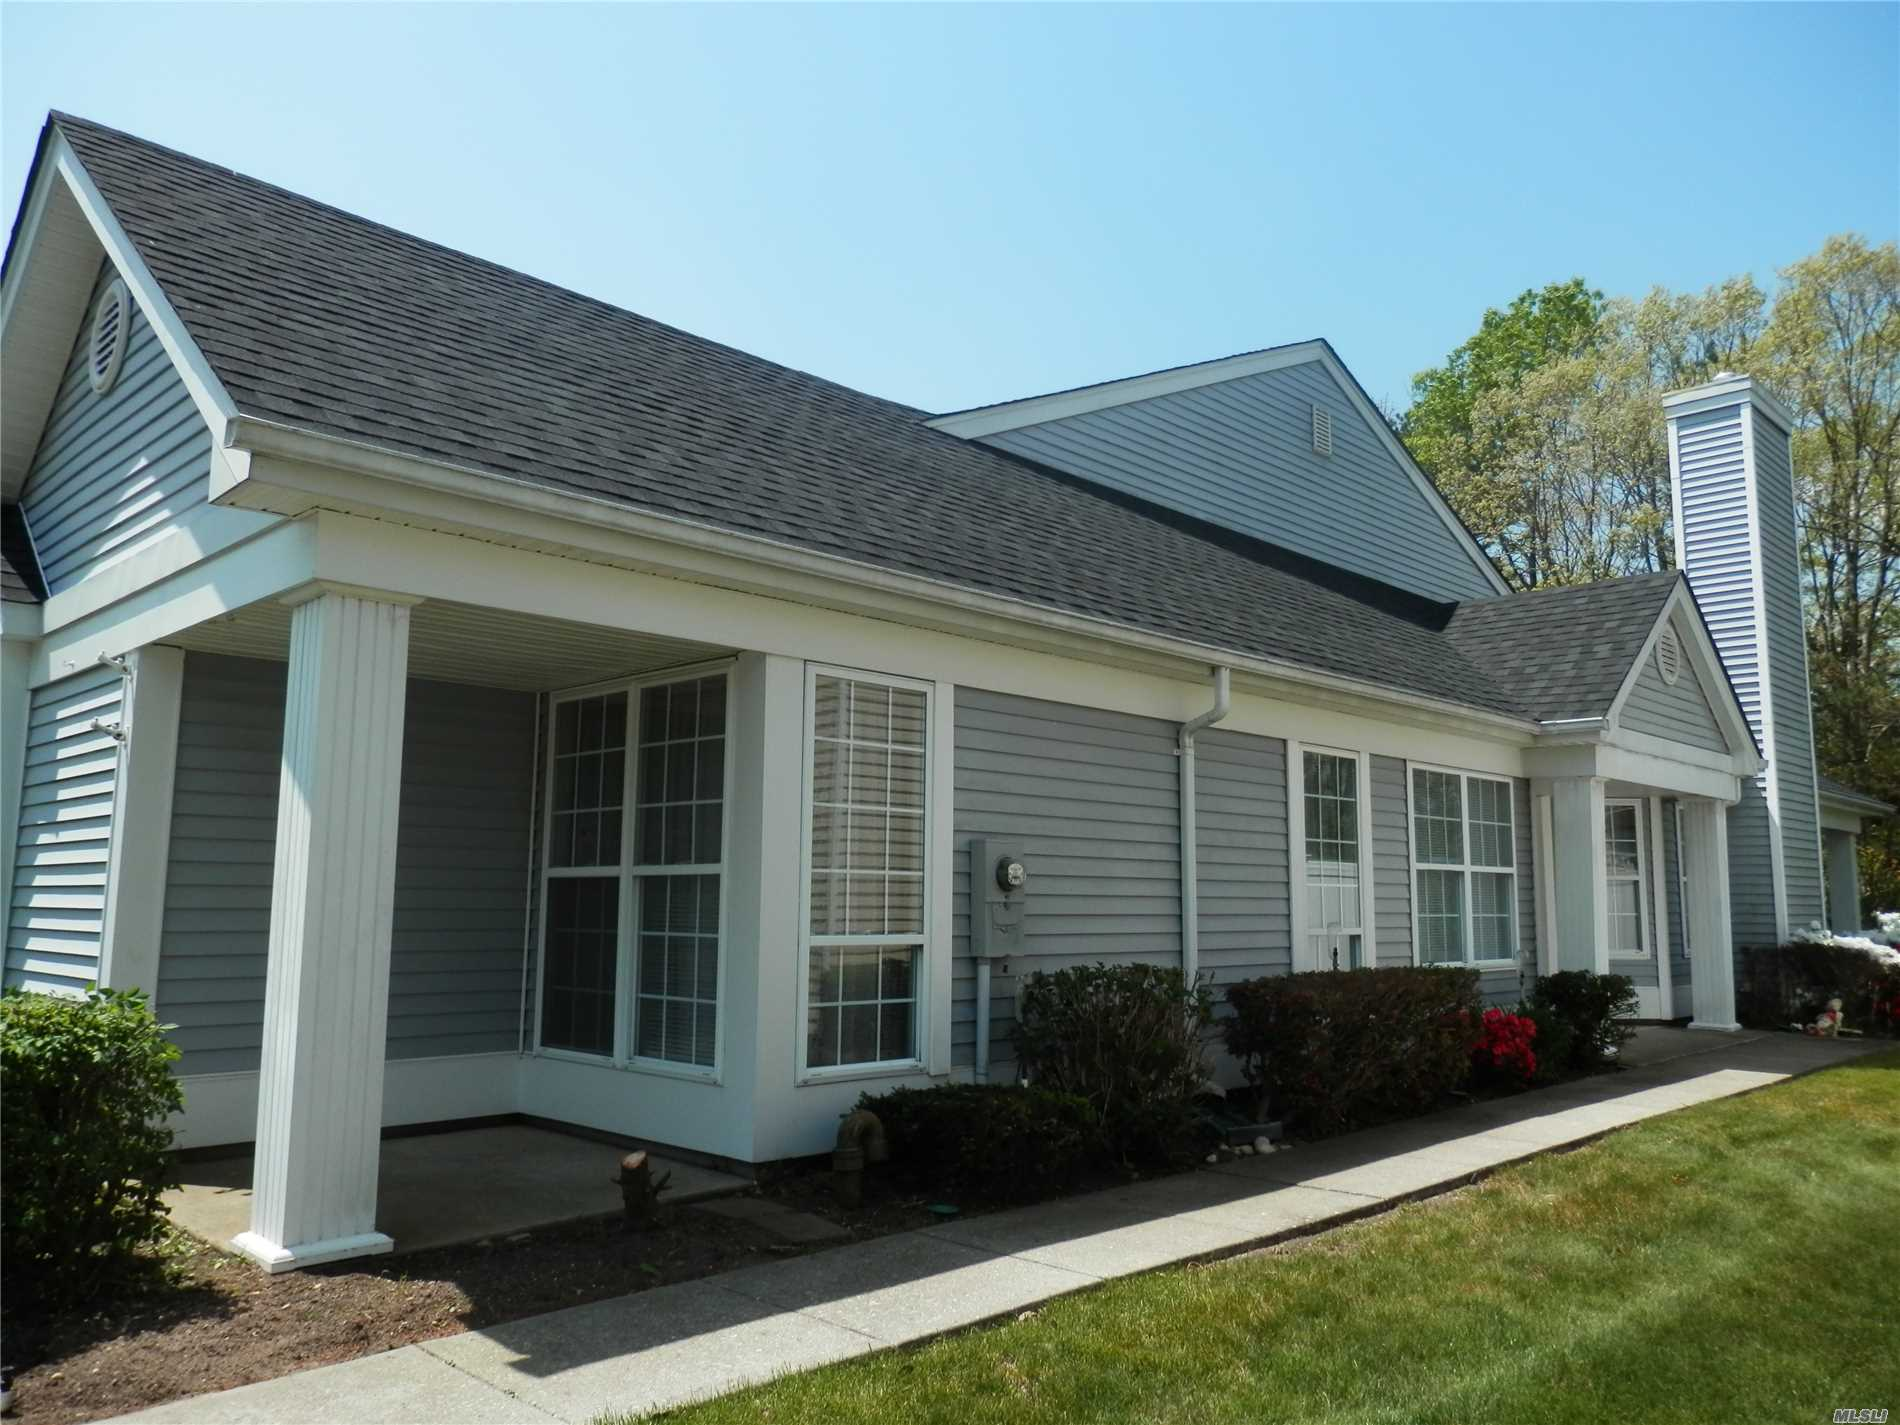 Bright, sunny Greenport, largest of the attached units. Newer windows, a/c replaced 2006, brick patio, private yard. Enjoy the many amenities Leisure Glen has to offer - country club, beautiful outdoor pool, tennis, gym, library, and endless planned activities. Buyer pays $1500 fee to administration. Taxes are in the process of being grieved!